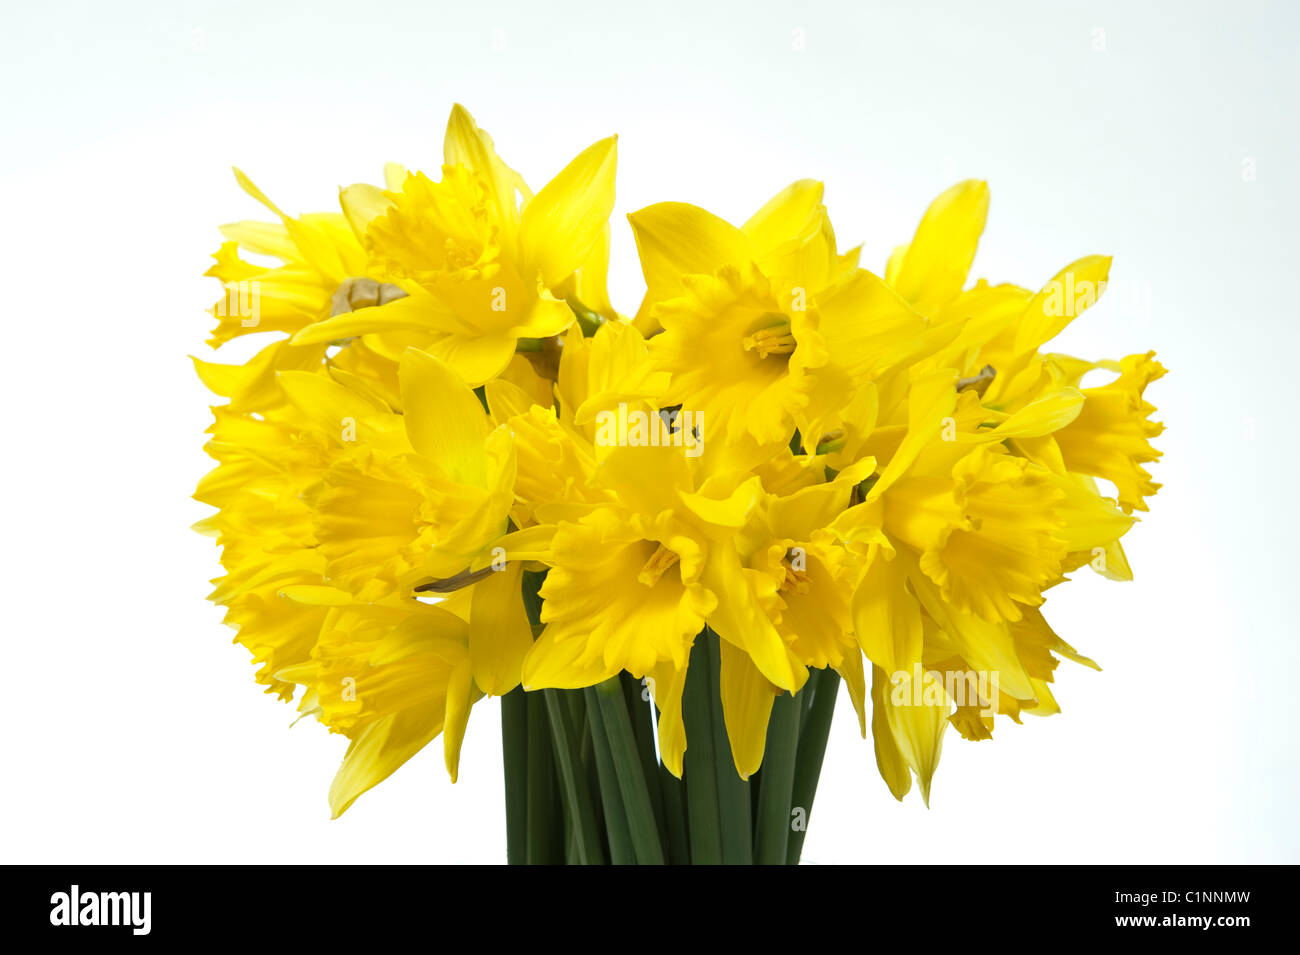 A bunch of spring daffodil flowers in a glass vase against a white background - Stock Image